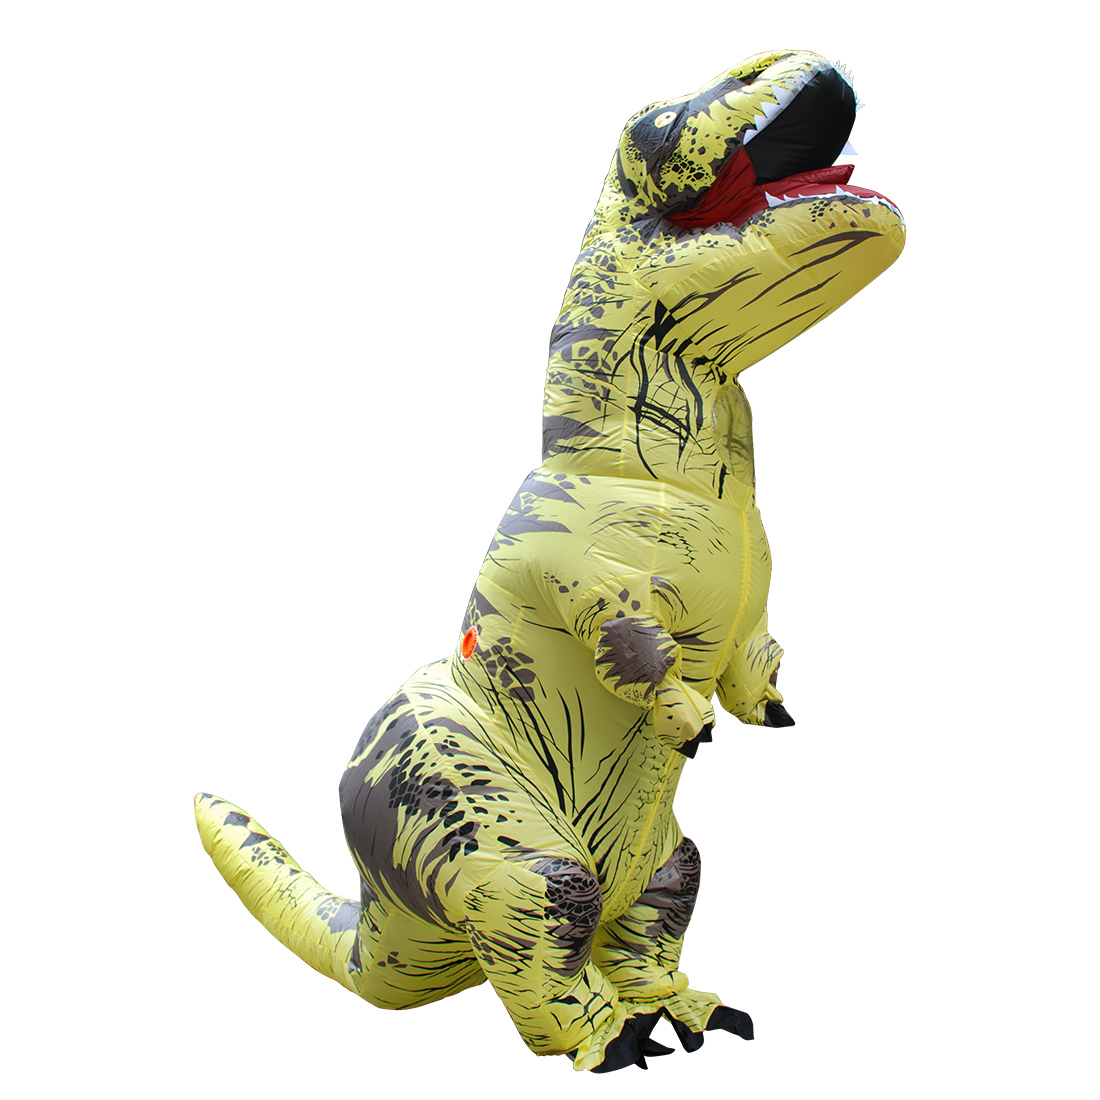 DANXEN Adult Yellow Polyester T-REX INFLATABLE Dinosaur Costumes